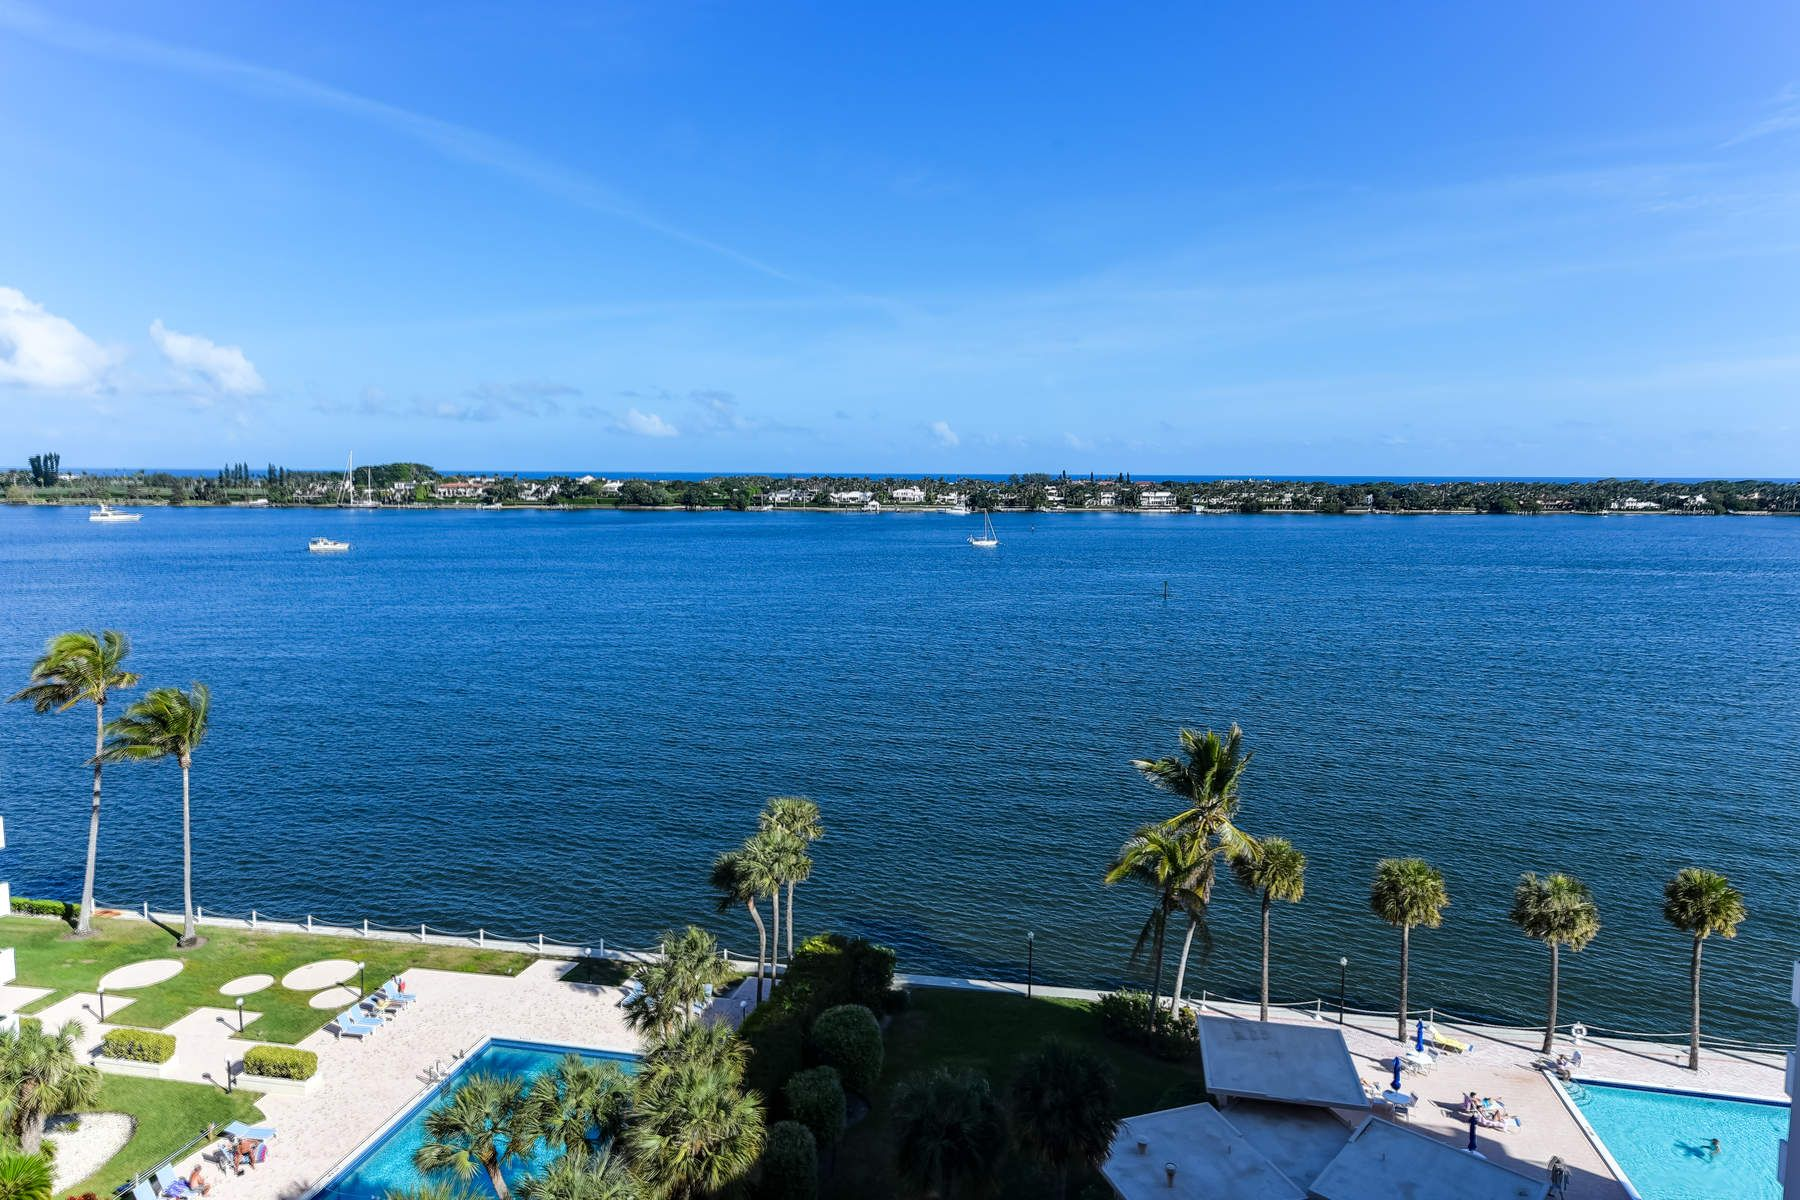 Condominium for Sale at Fantastic Penthouse - Intracoastal Views 2600 N Flagler Drive 1003, West Palm Beach, Florida, 33407 United States